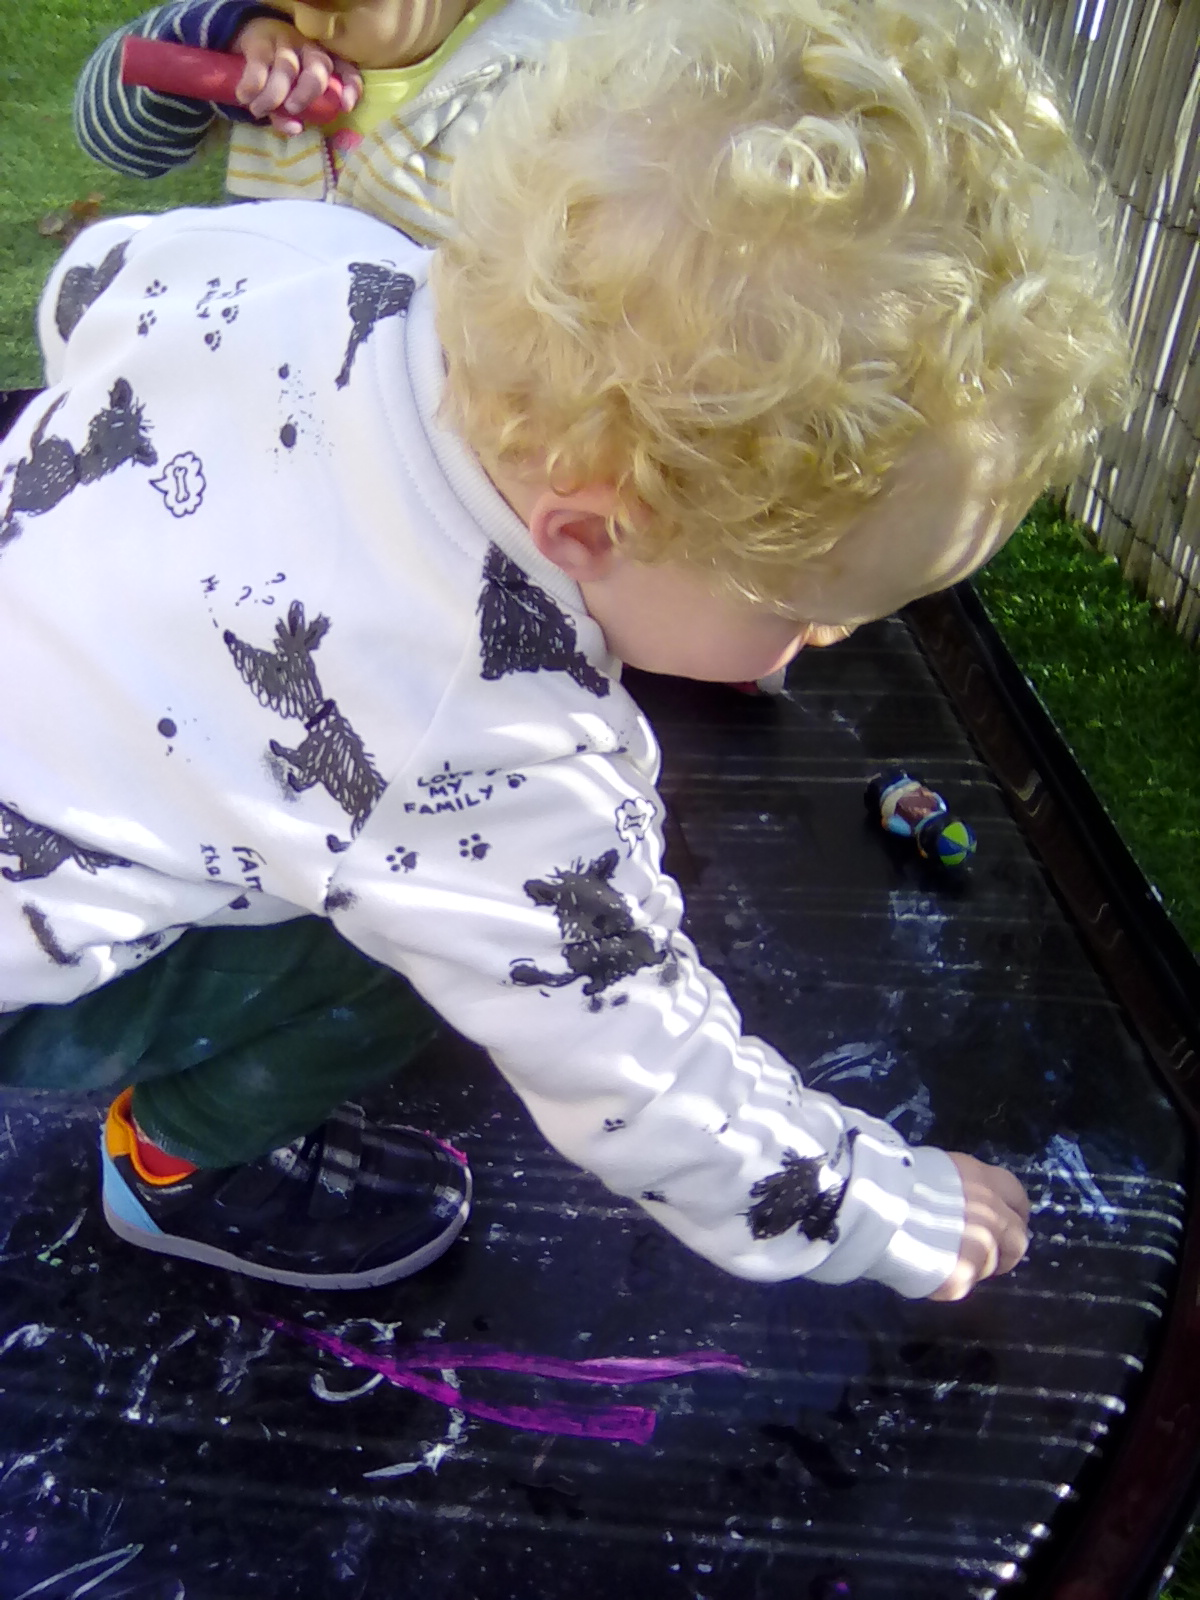 Playing with the chalks outside